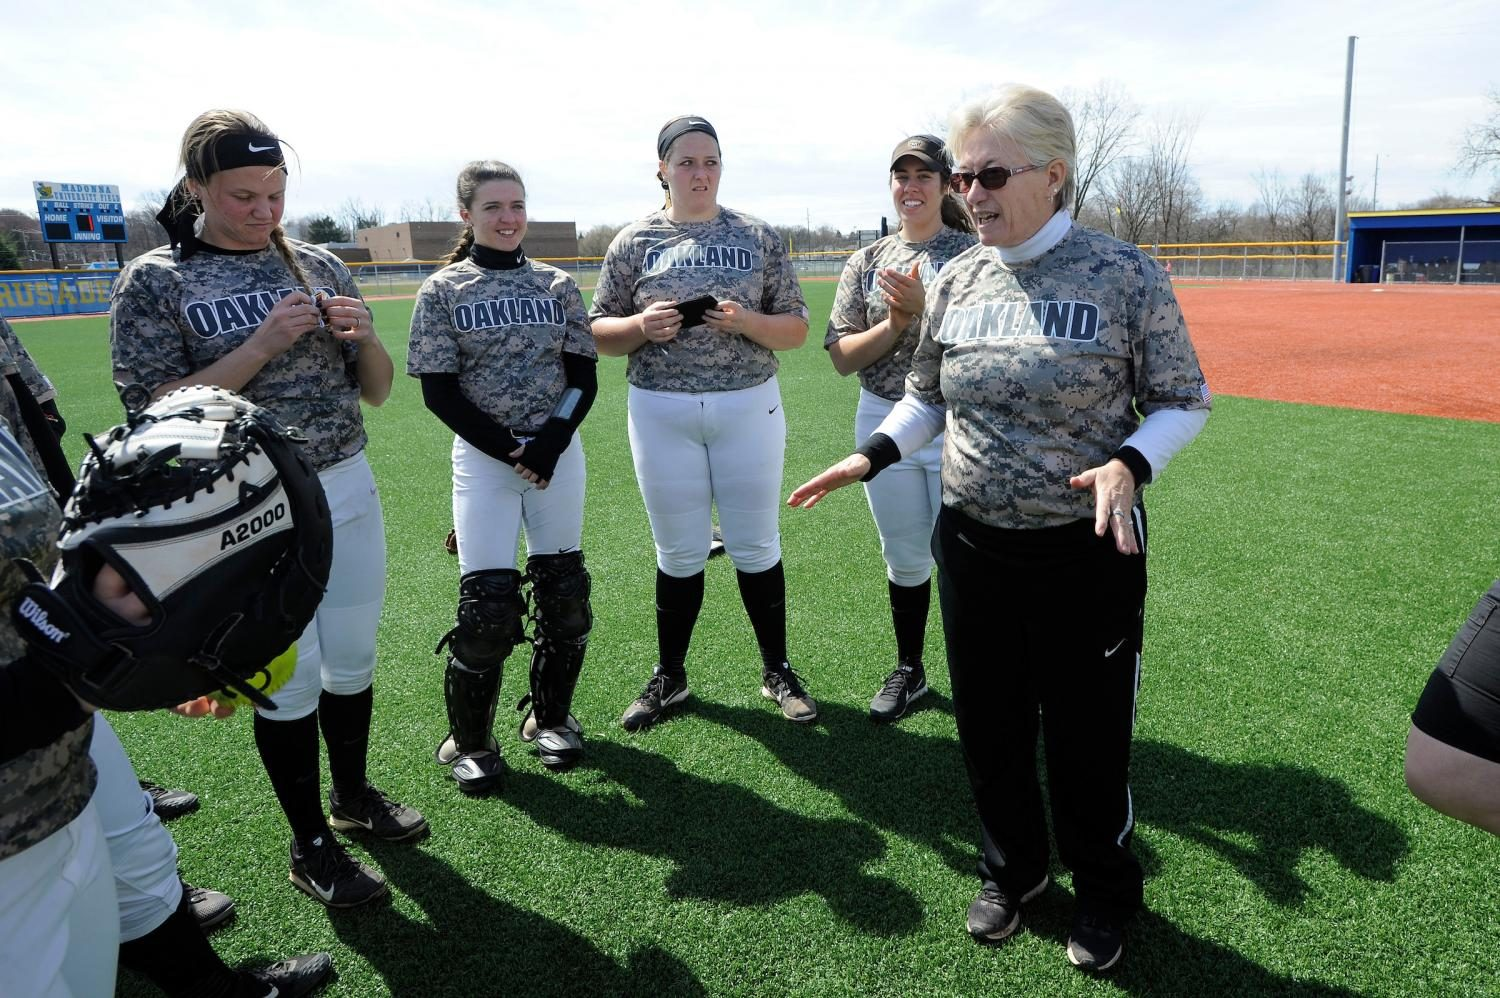 Miner resigns as head coach of Oakland softball